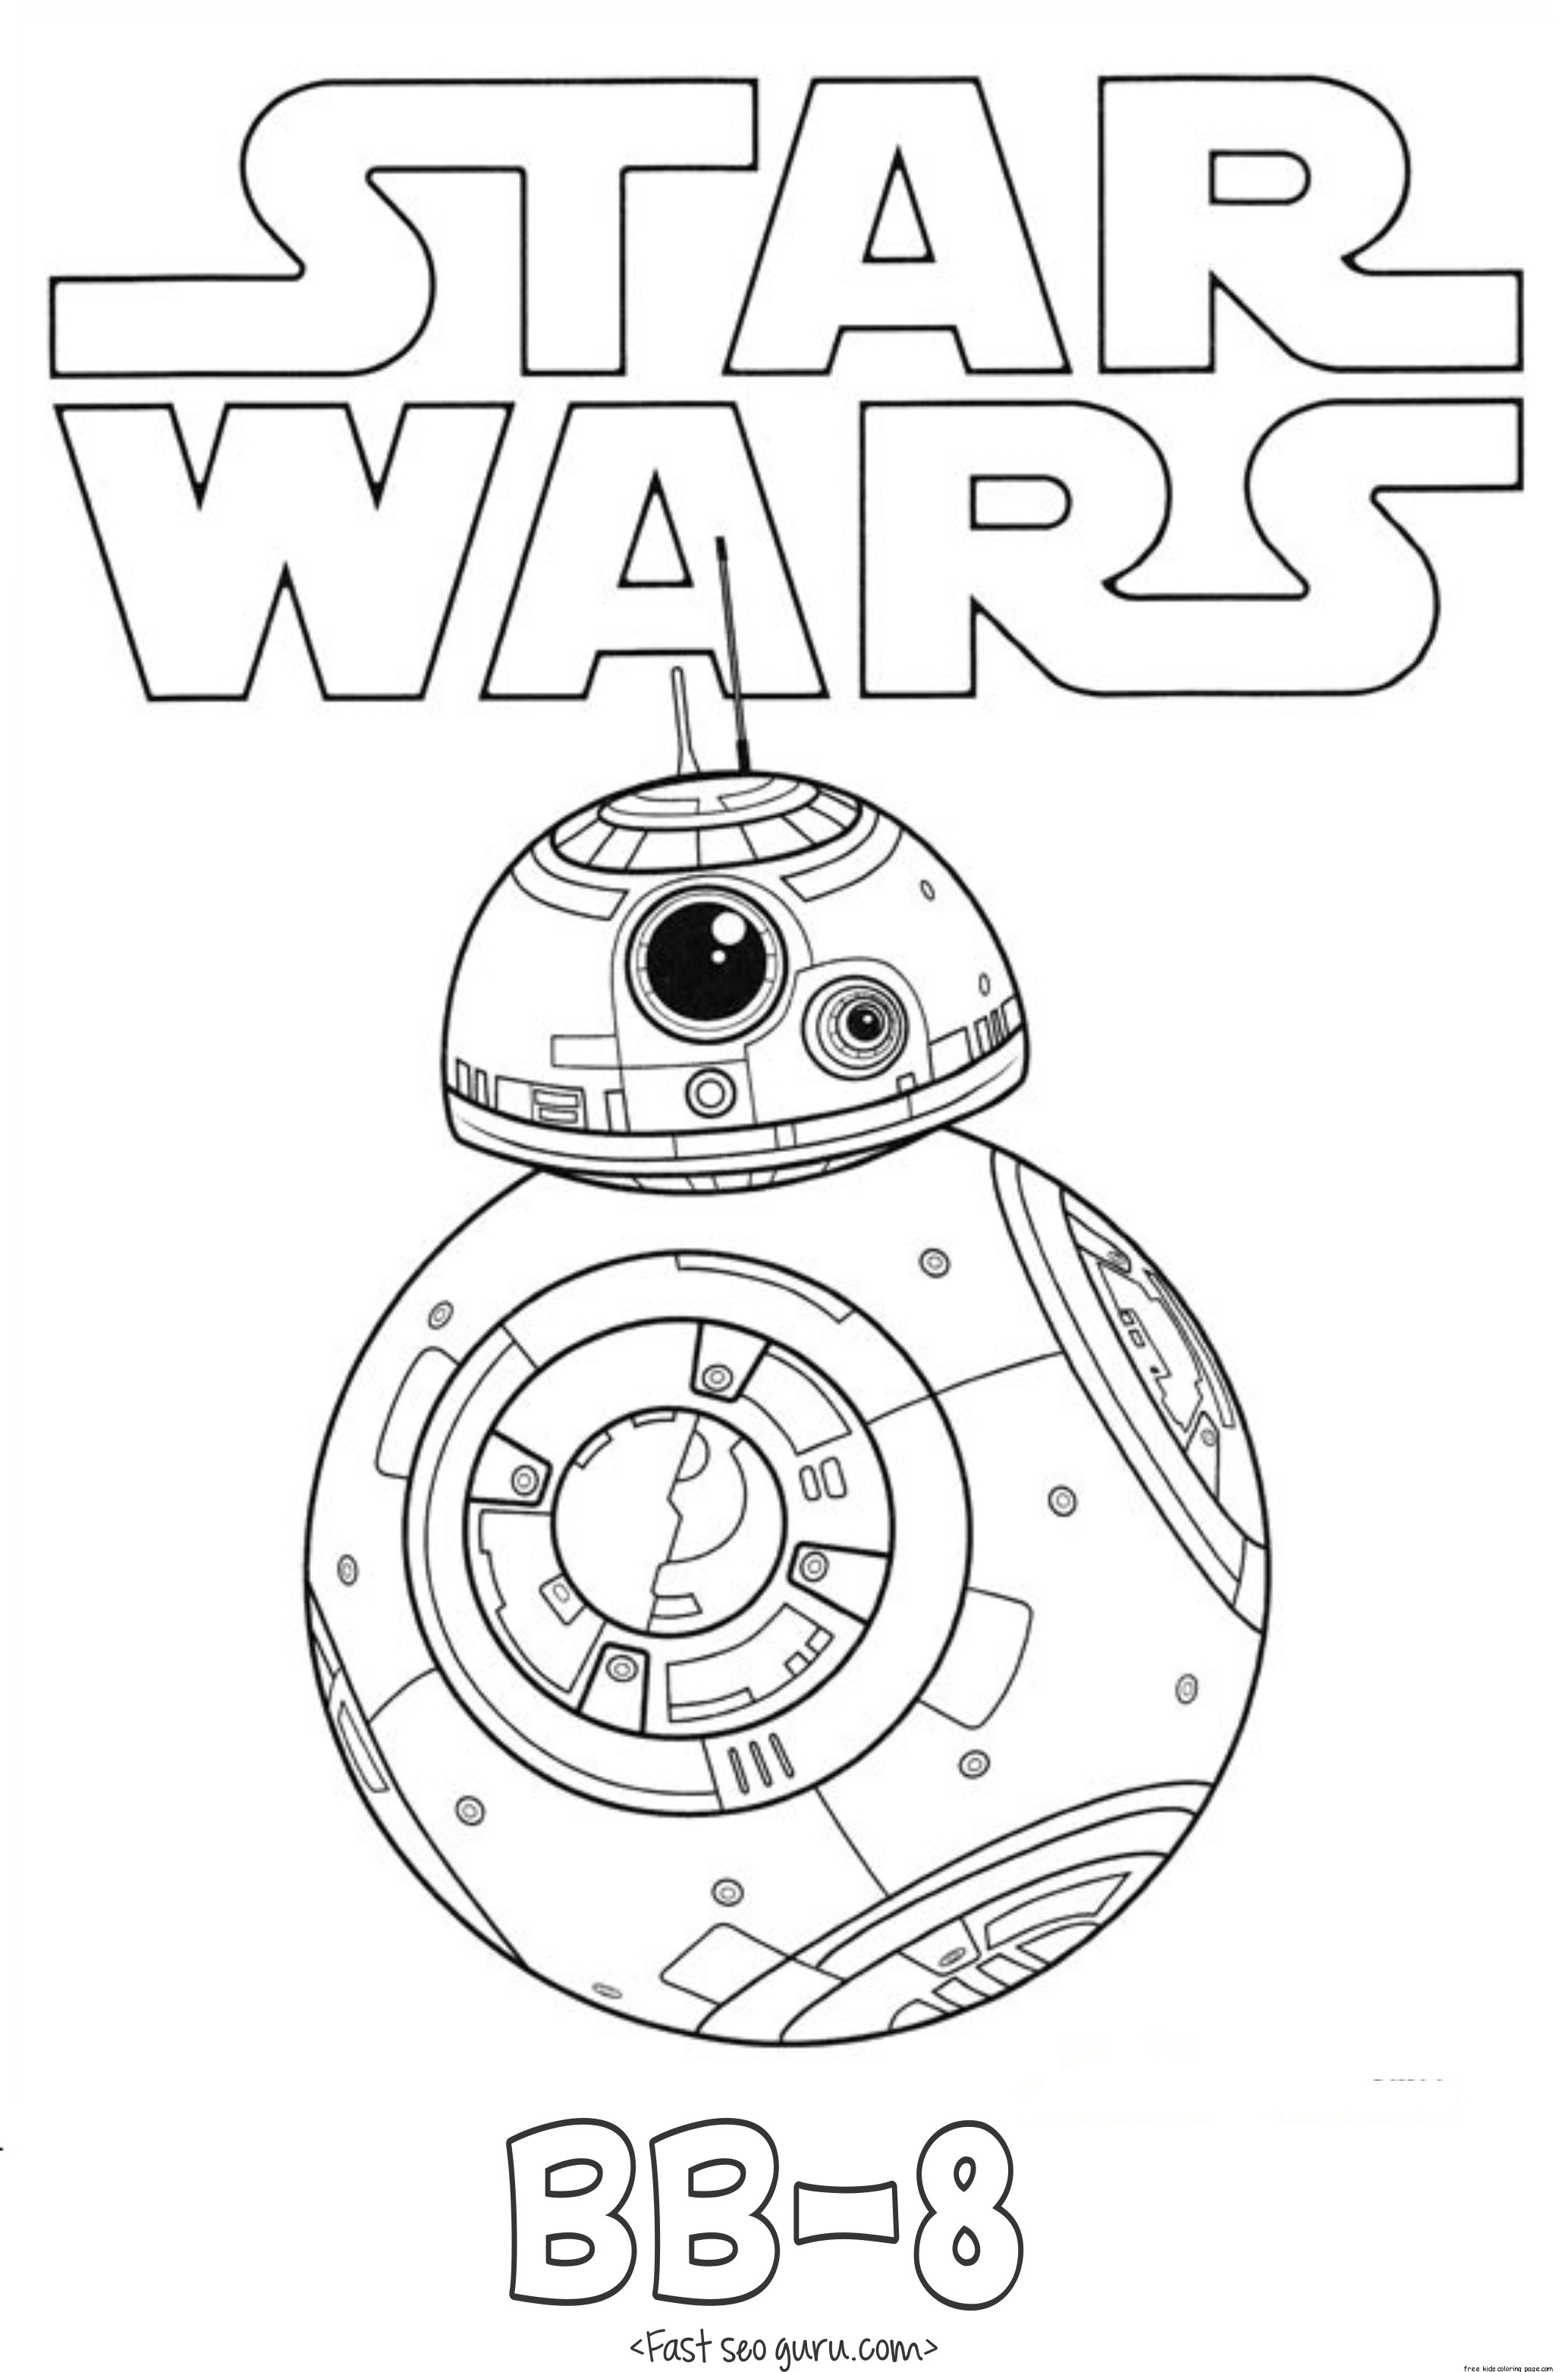 star wars pictures to print and color star wars to download star wars kids coloring pages wars print star pictures color and to